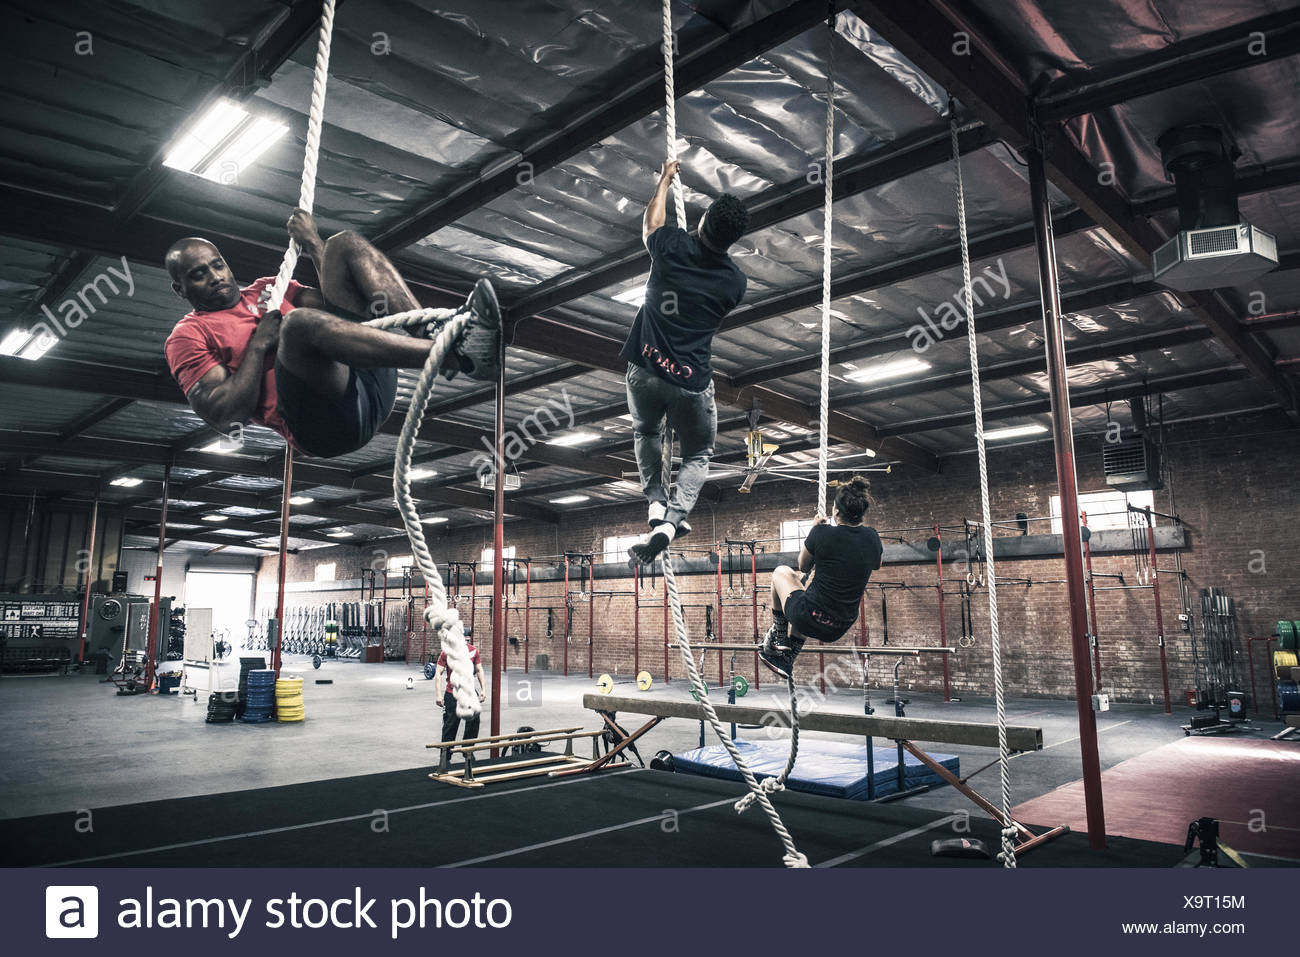 Men and women climbing ropes in gym - Stock Image